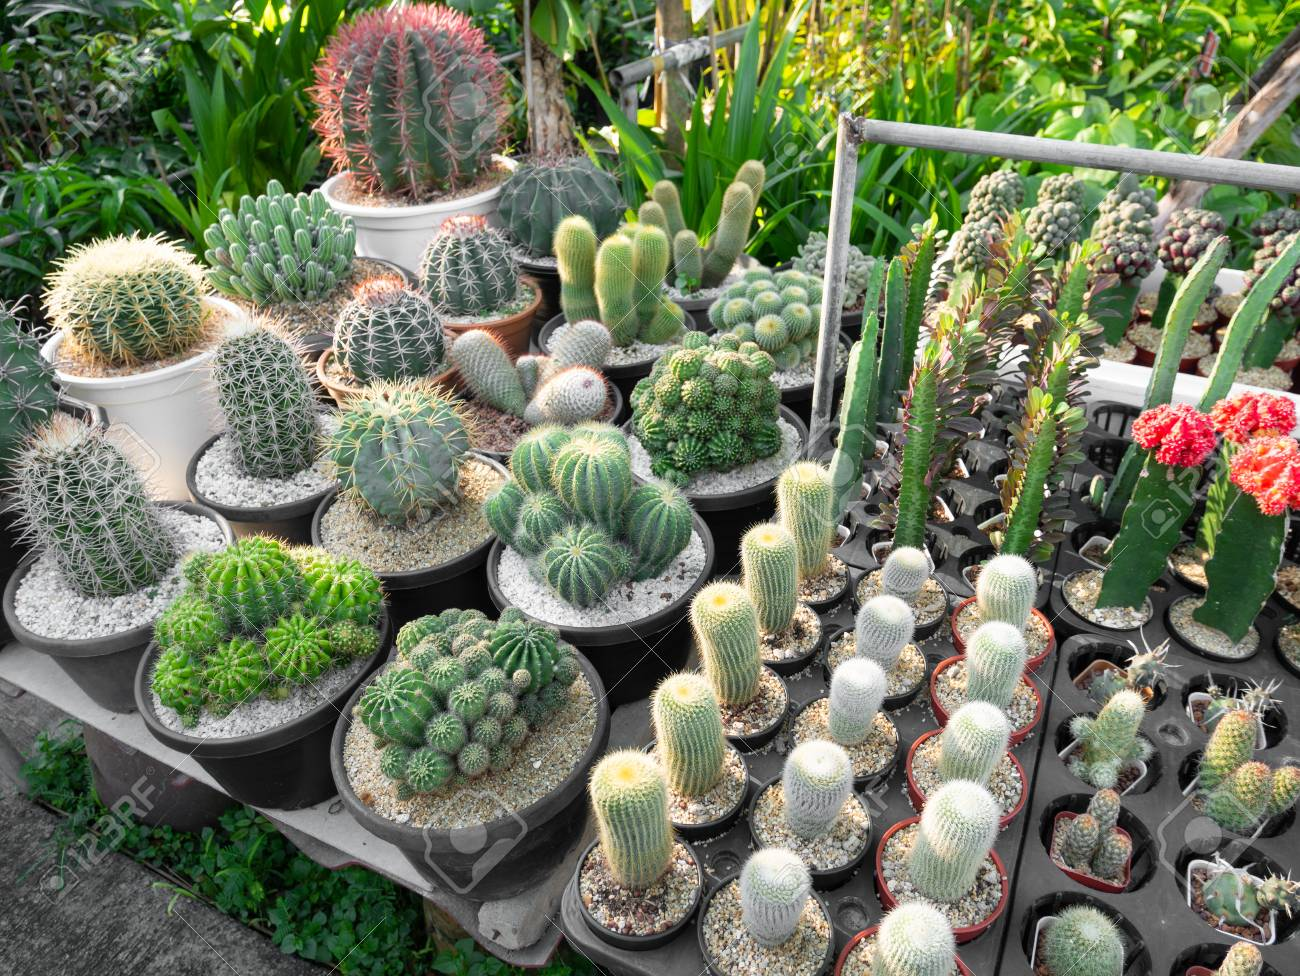 Variety Of Cactus Plants For Sales In Plant Shop Stock Photo